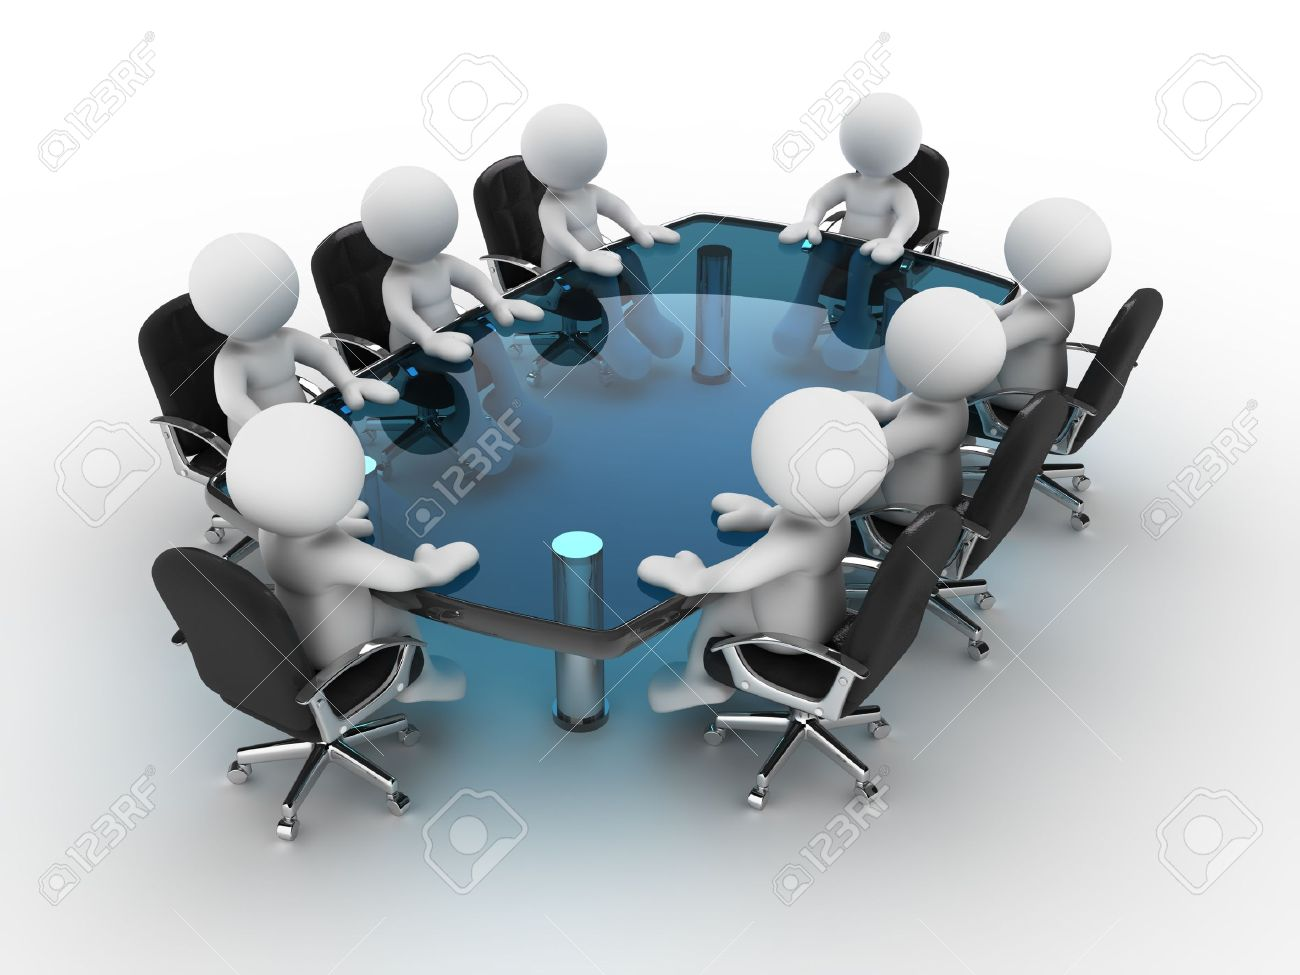 Round table meeting icon - Round Table 3d People Human Character Person At Conference Table 3d Render